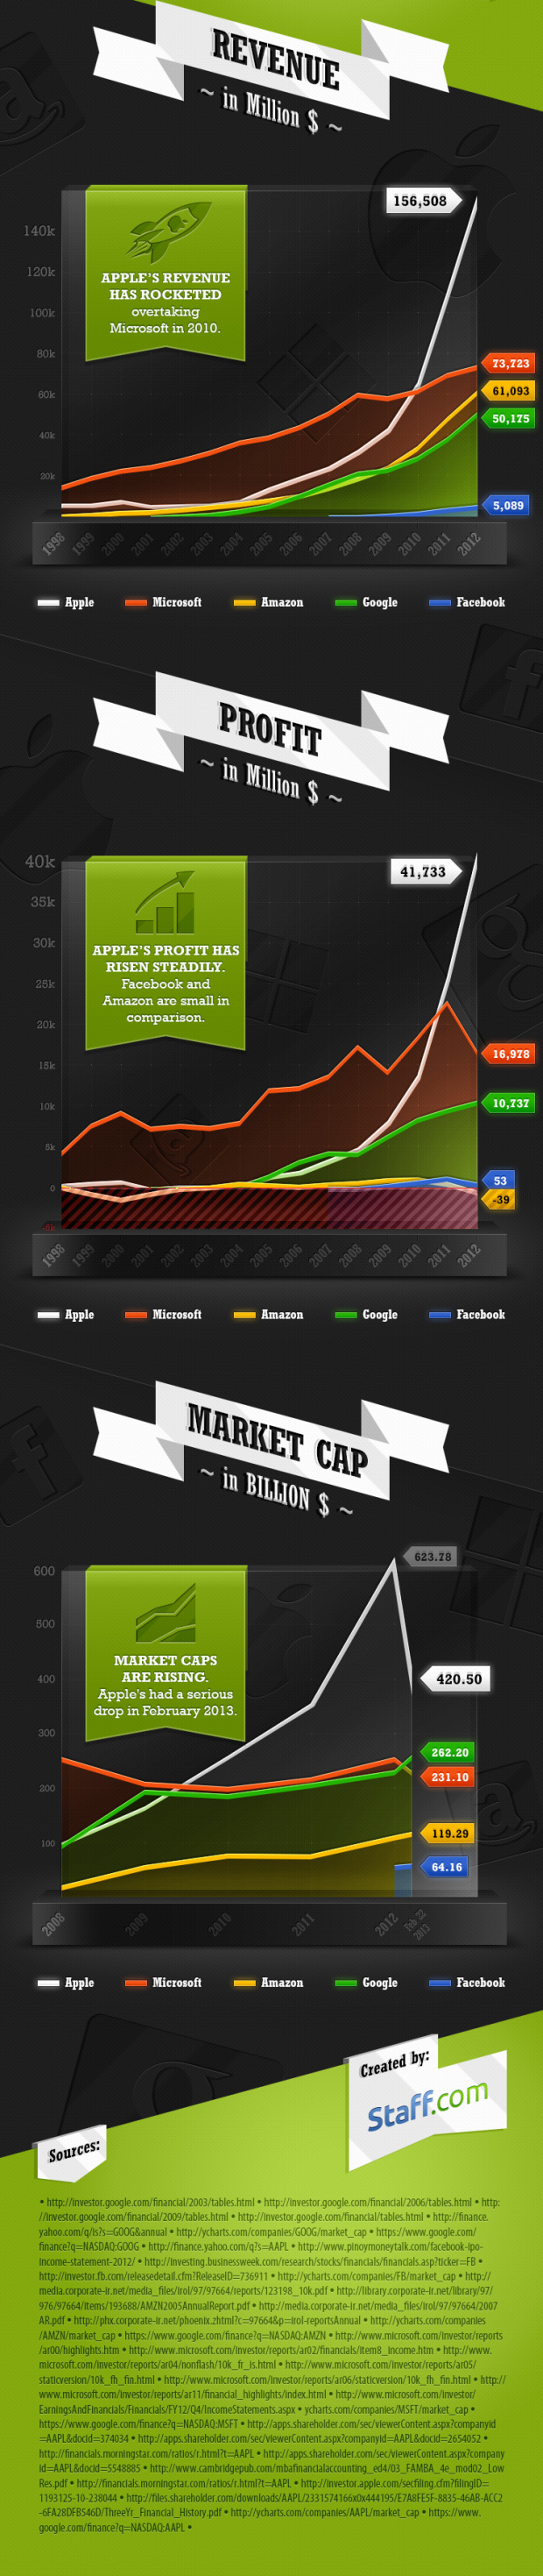 infograph_revenue-profit-tech-giants-b